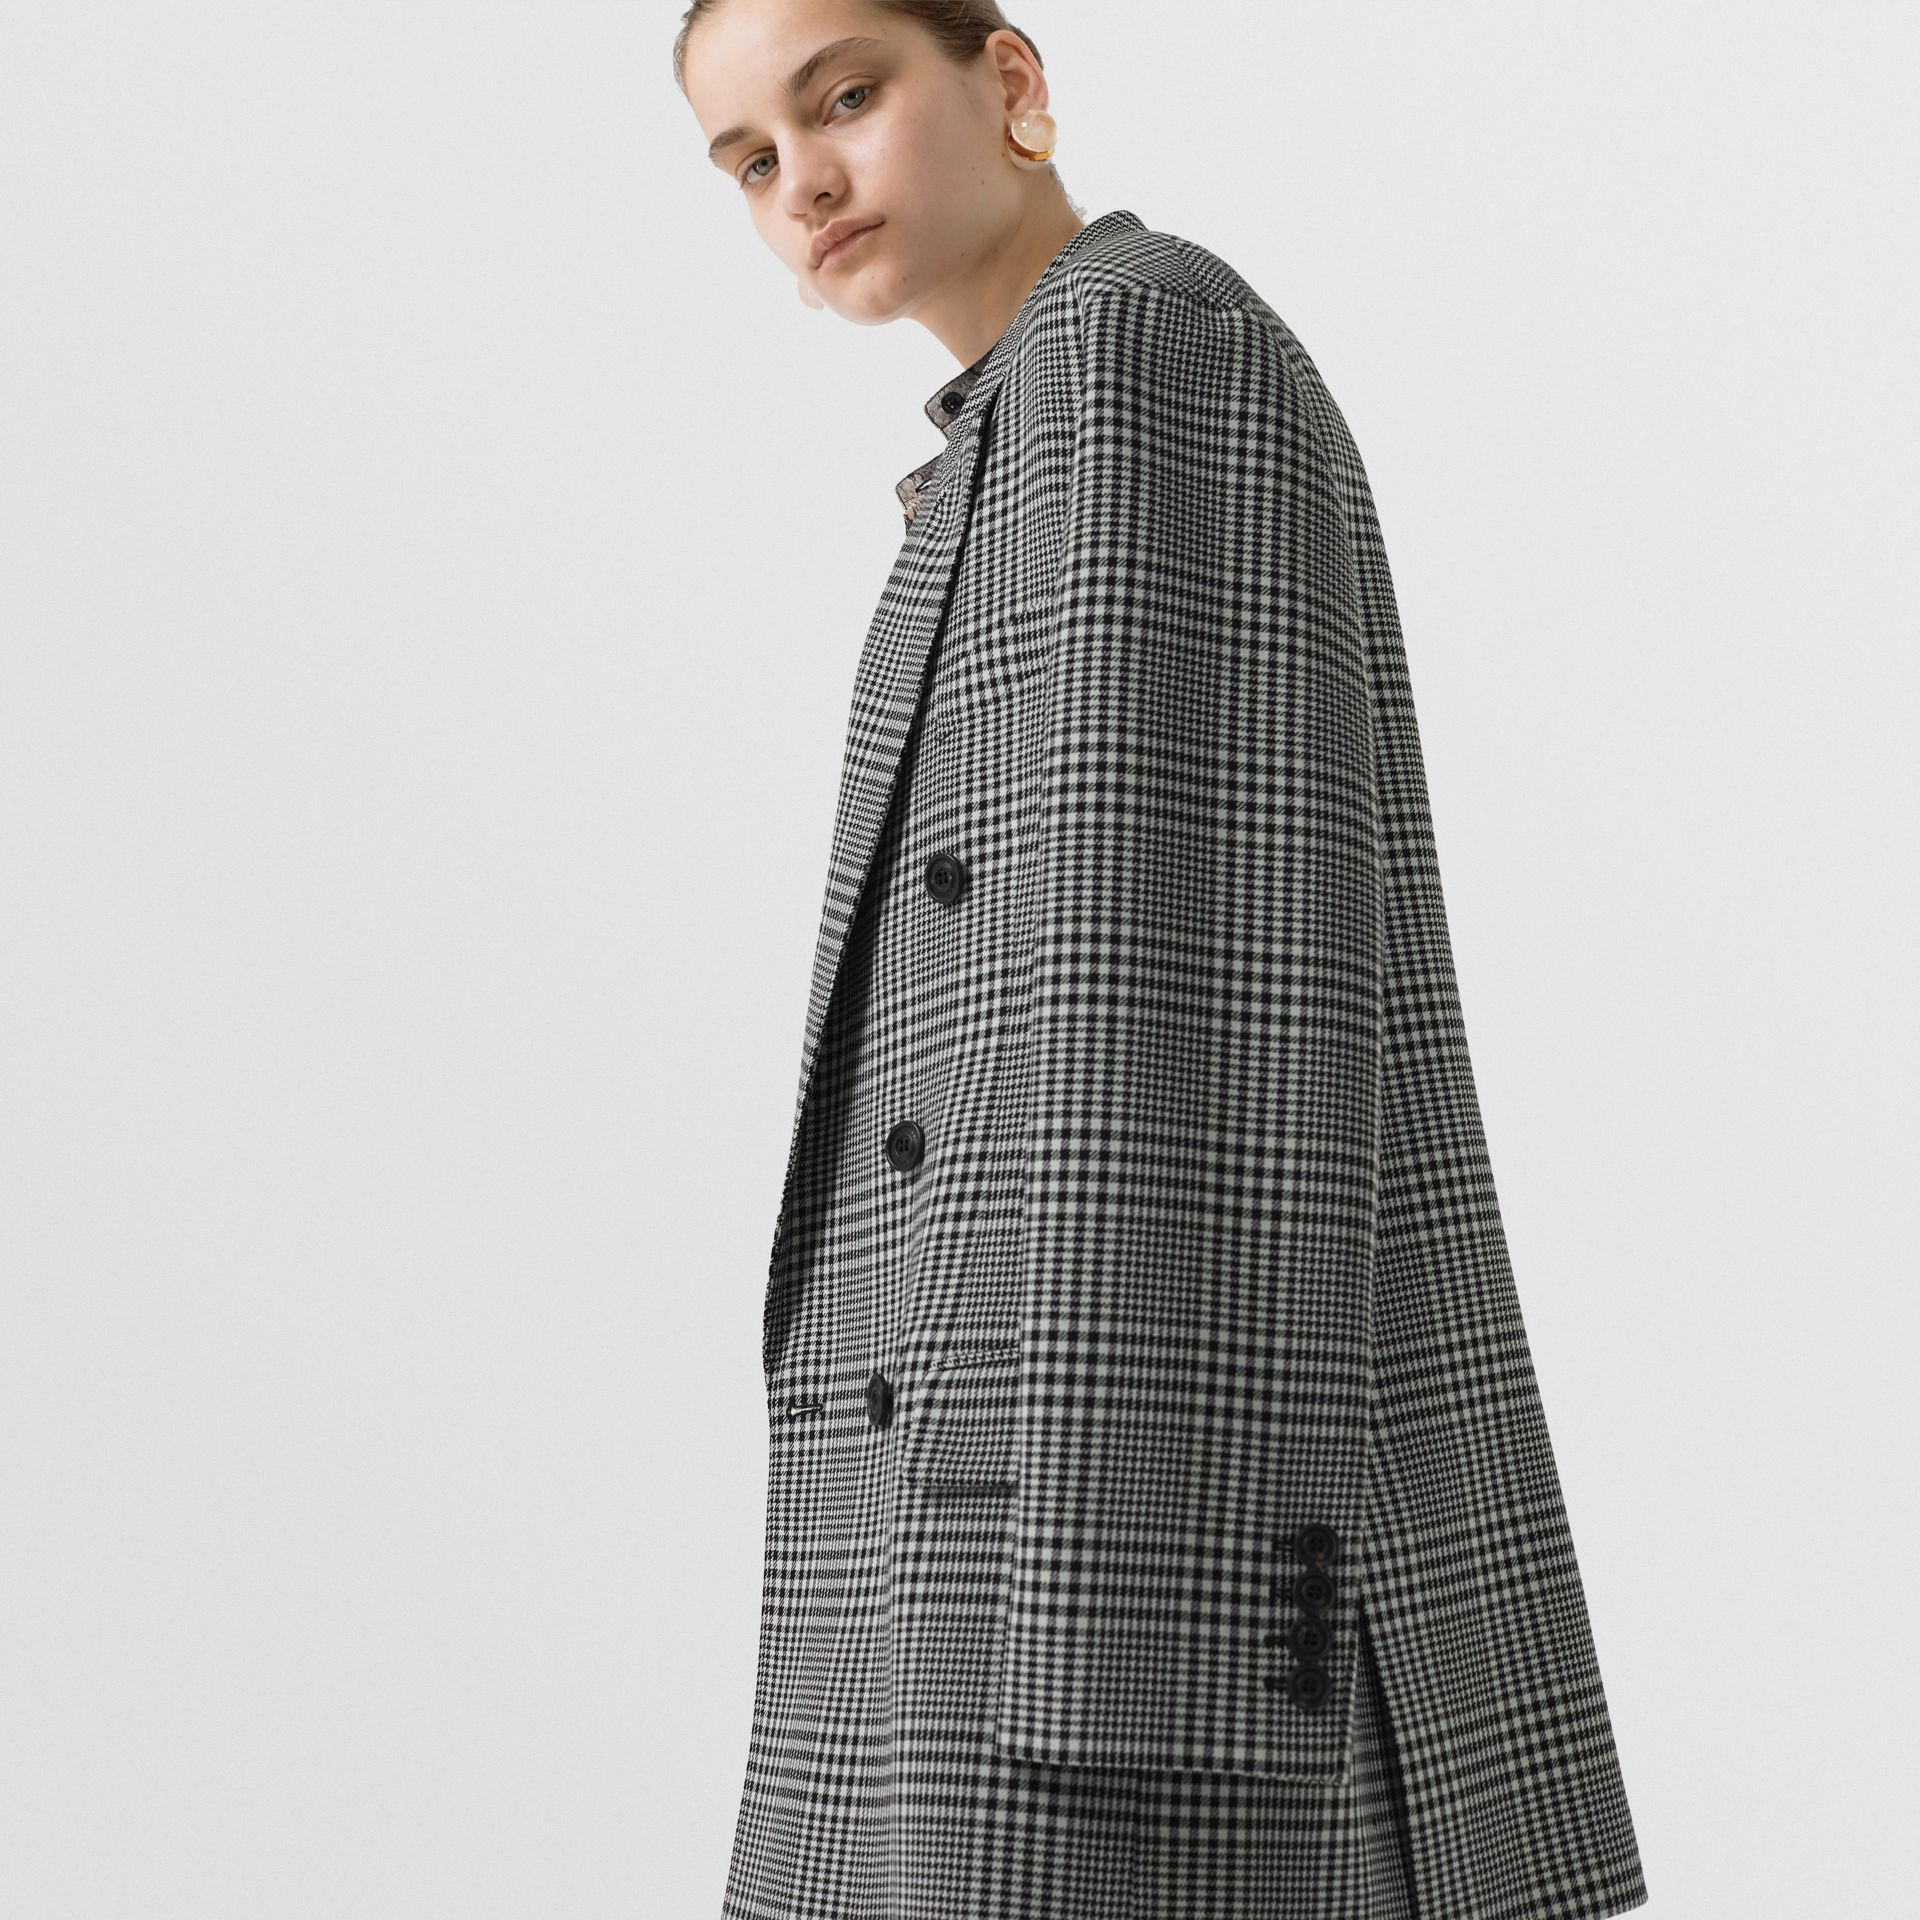 Prince of Wales Check Wool Oversized Jacket in Mist Green - Women | Burberry United States - gallery image 1